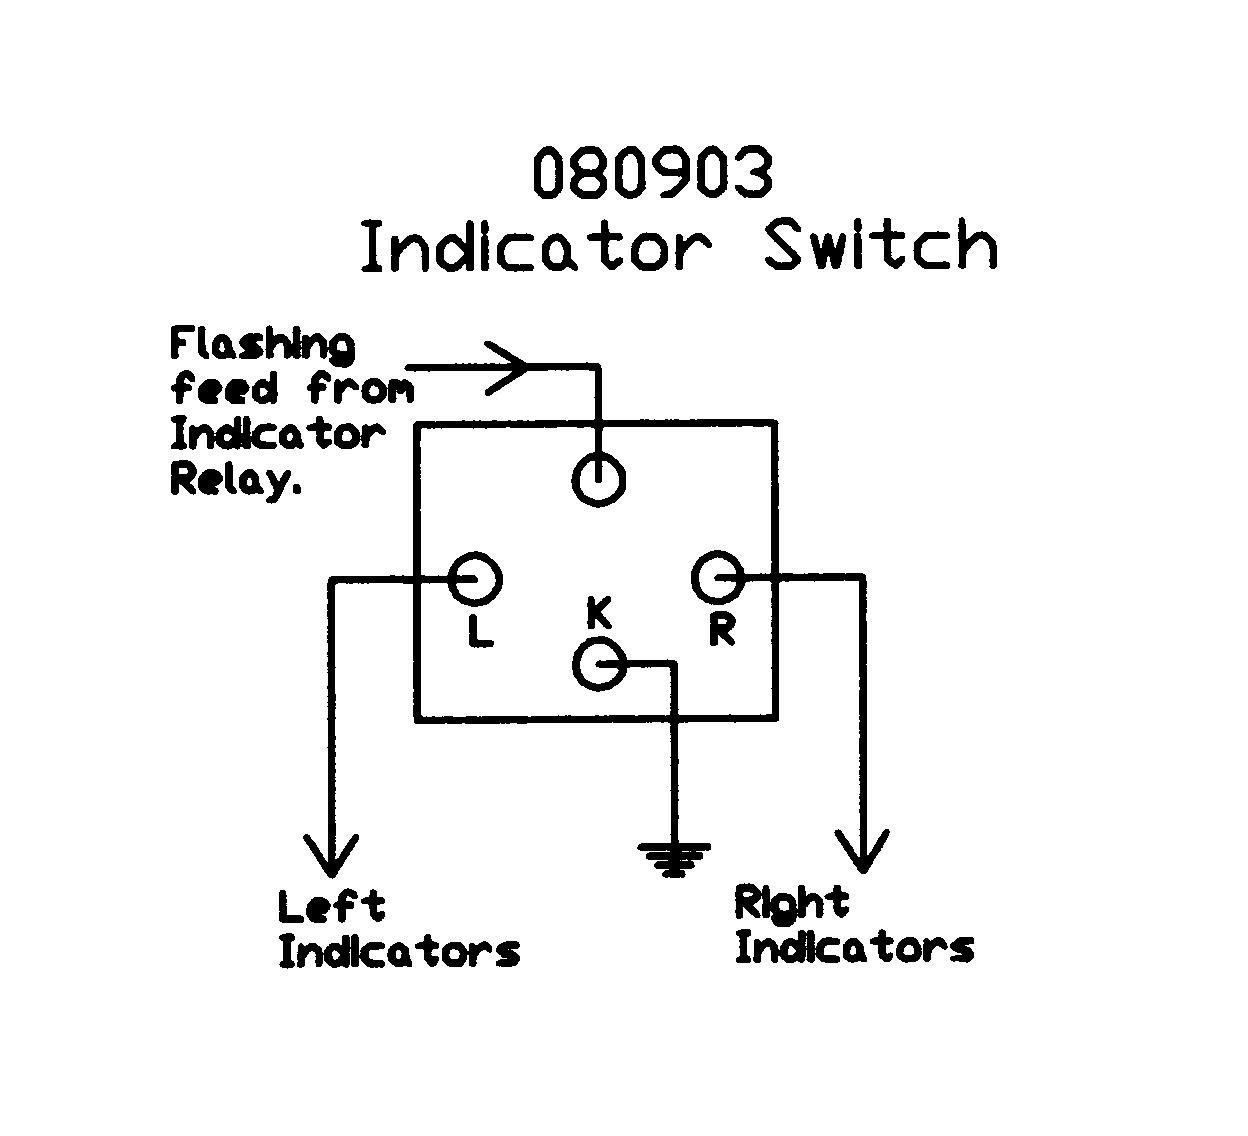 how to wire a single pole switch diagram venn formula for 3 sets wiring rotary selector switches